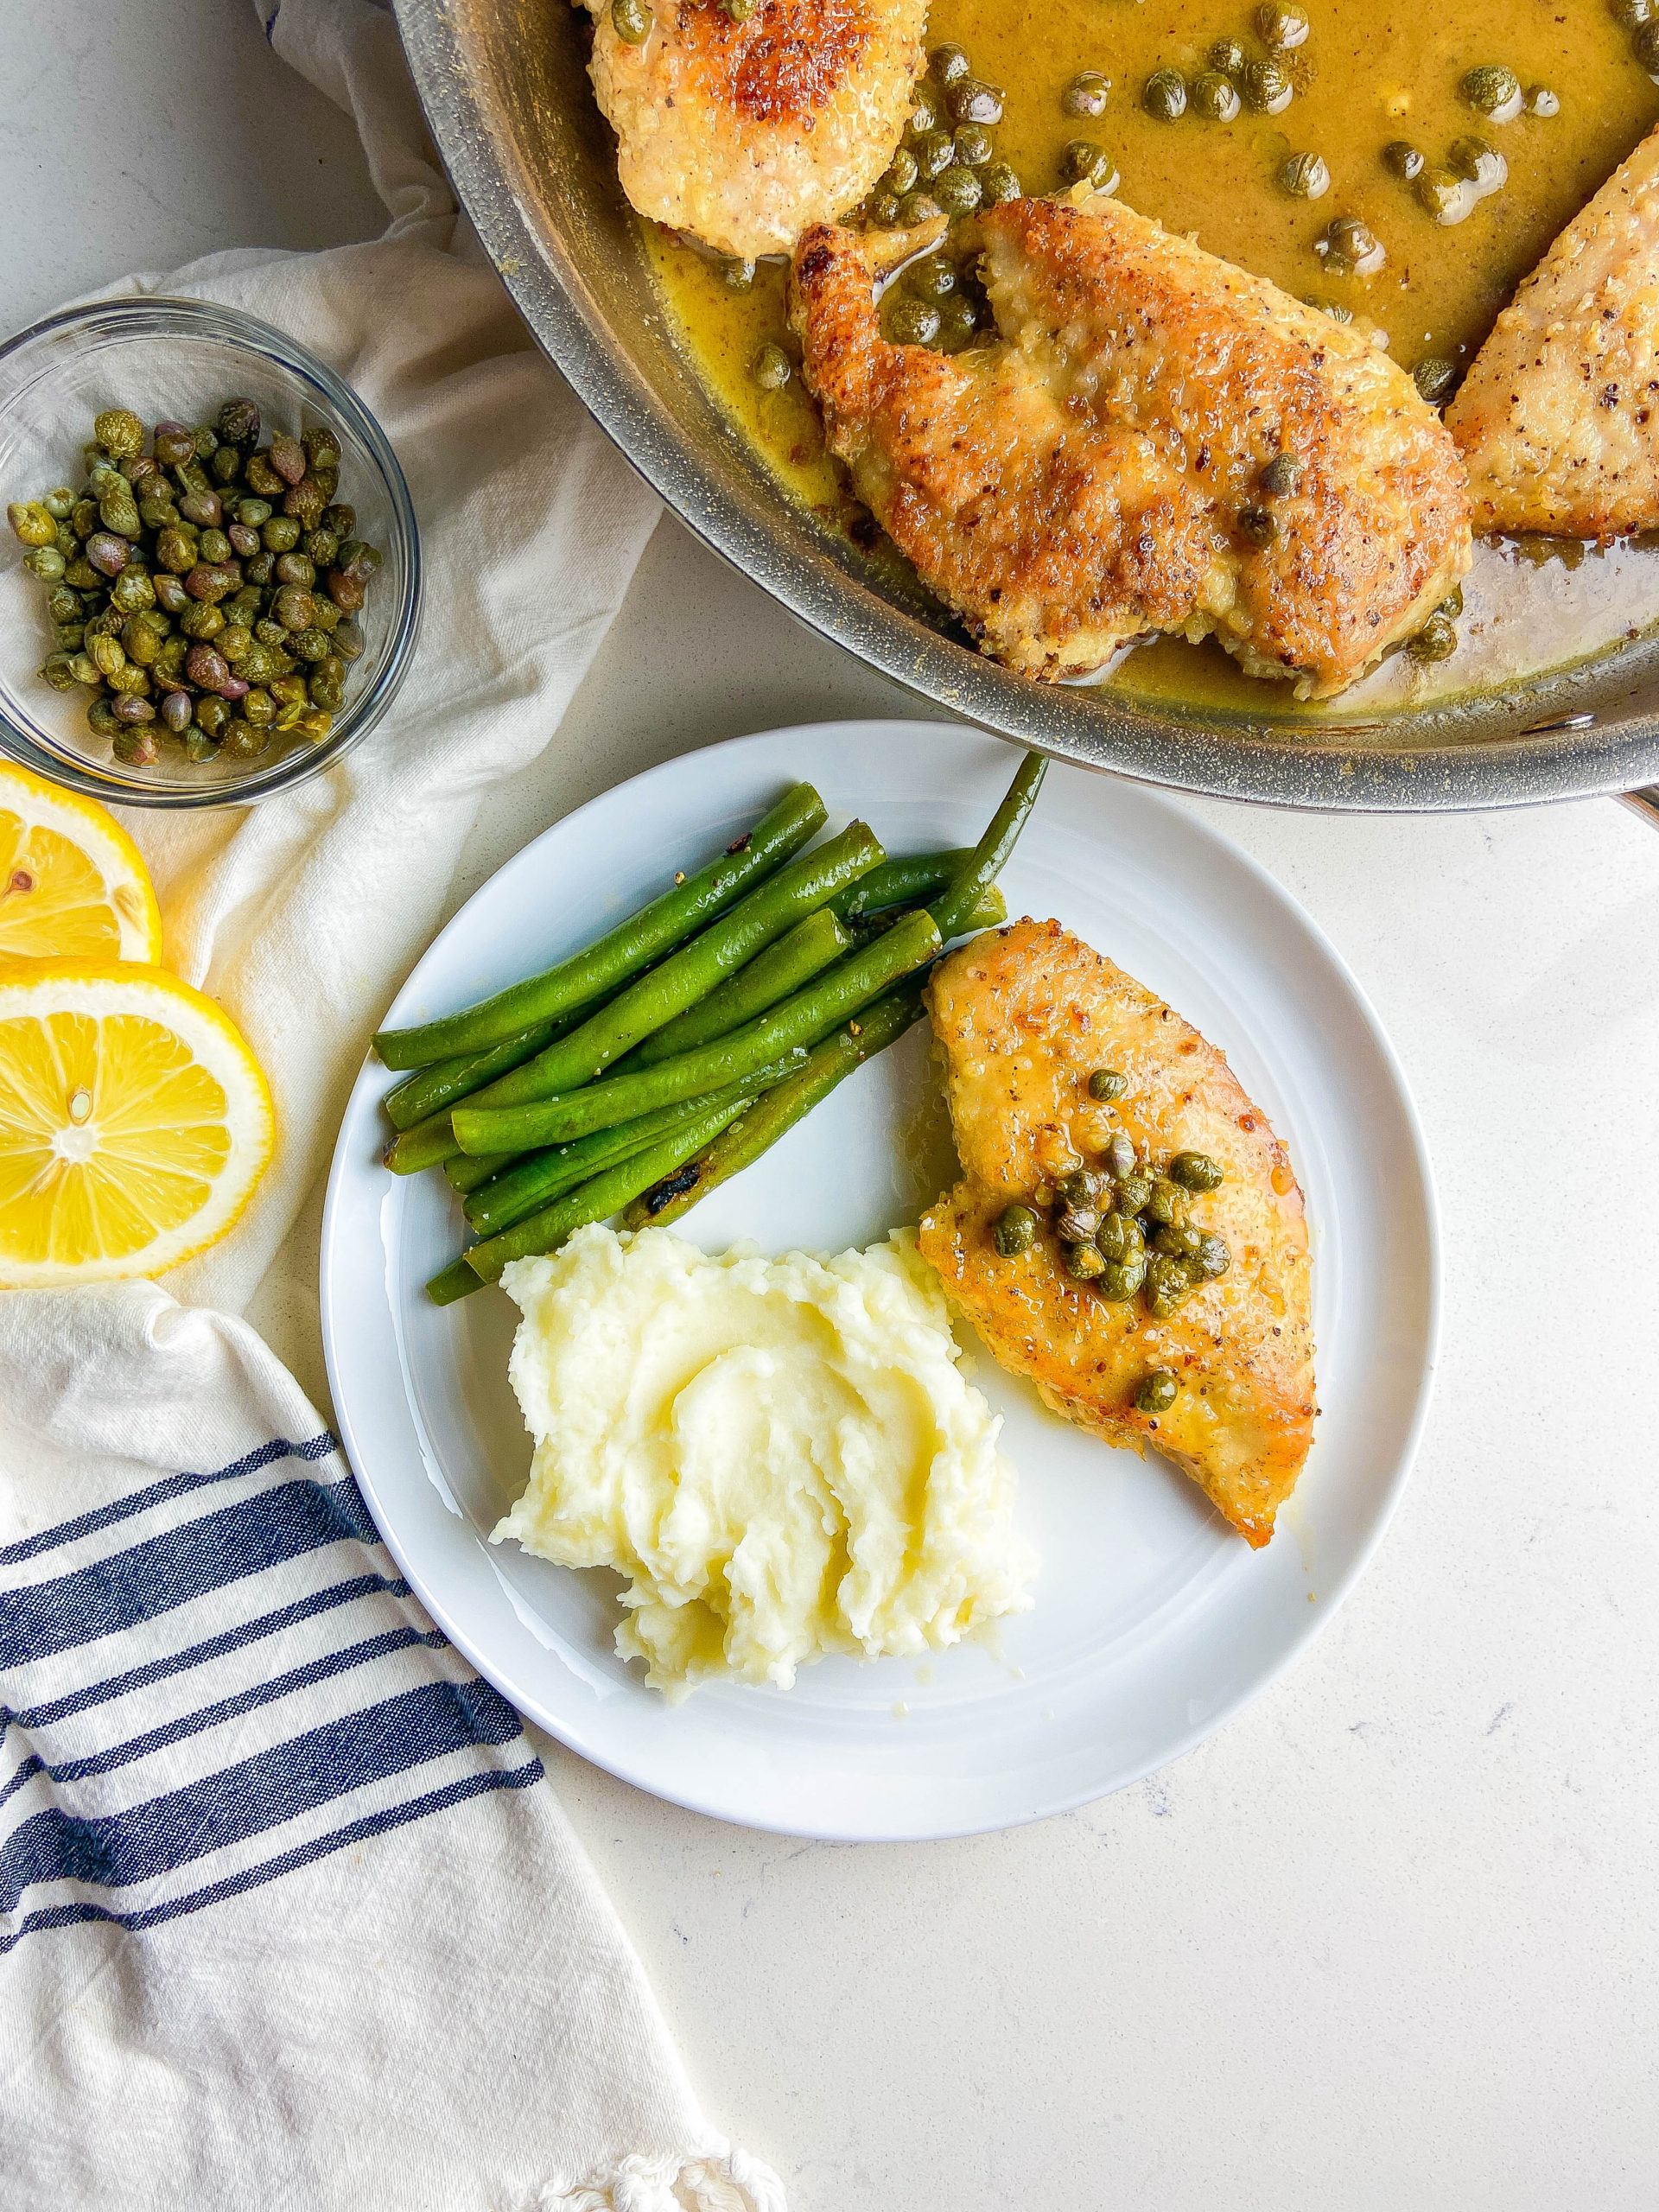 Overhead photo of chicken piccata on a plate with mashed potatoes and green beans.